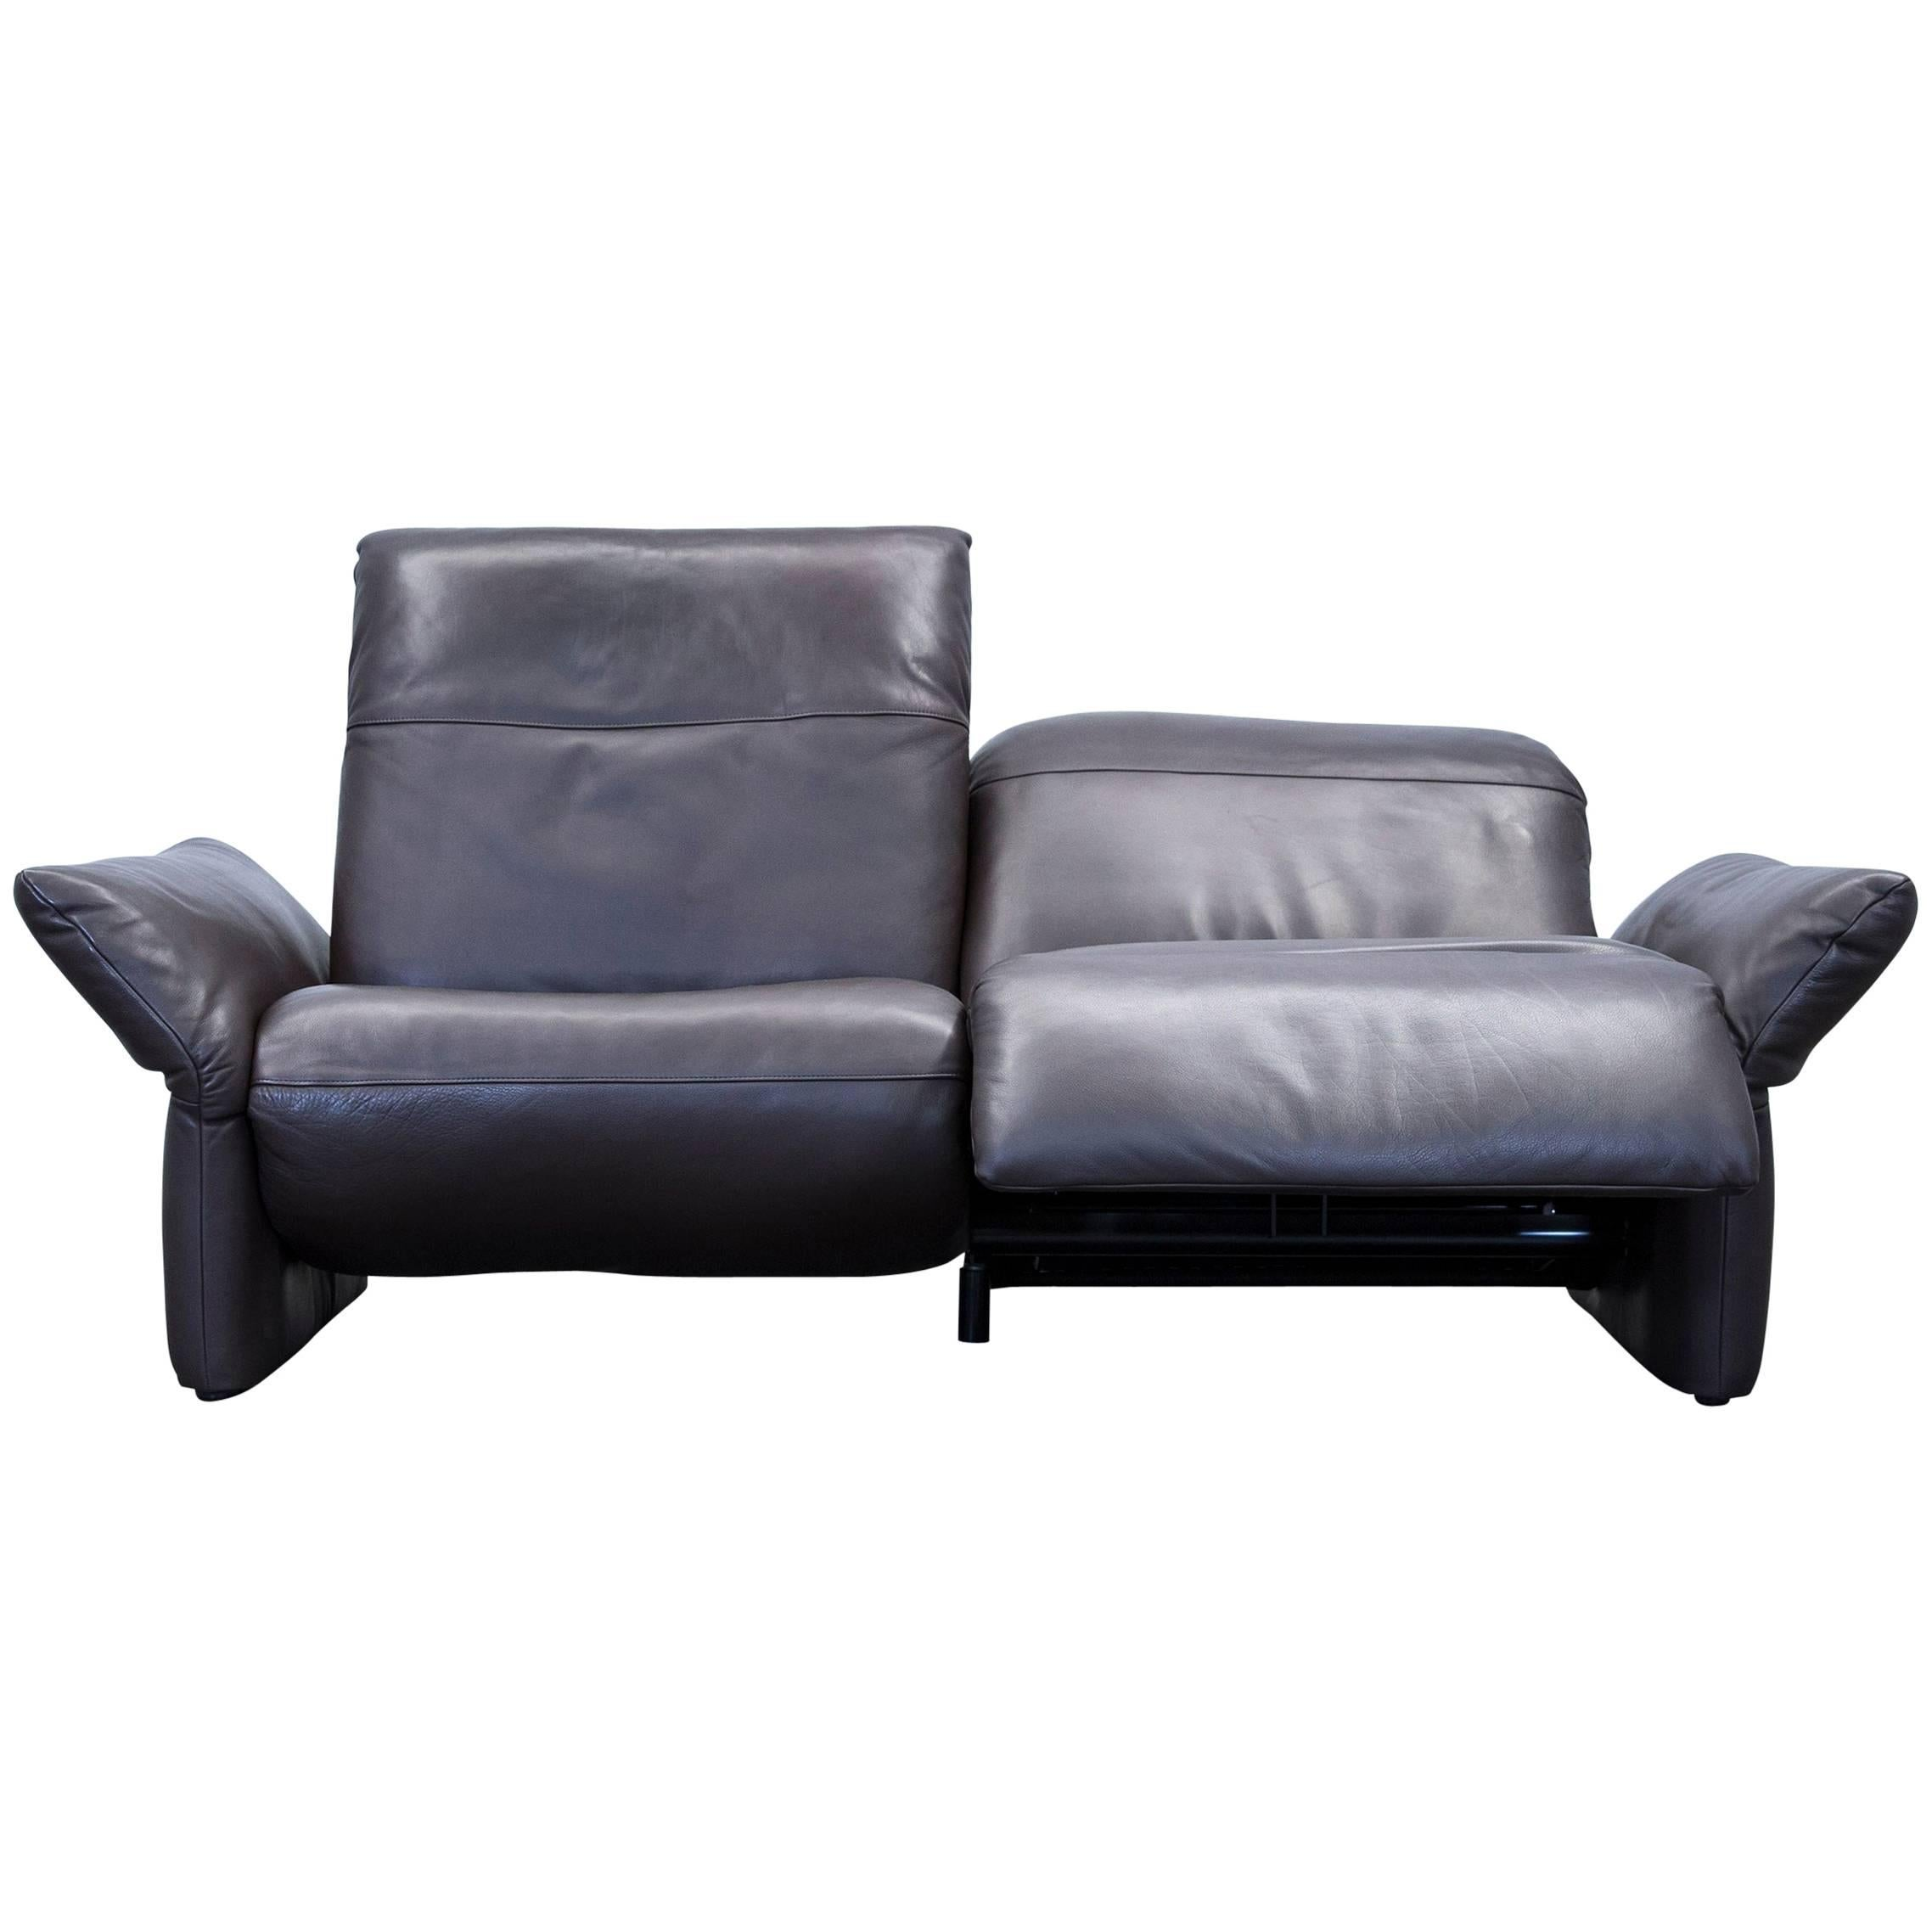 Polsterecke Montego Fr Polstermbel Interesting Patio Loveseat And Ottoman Sectional